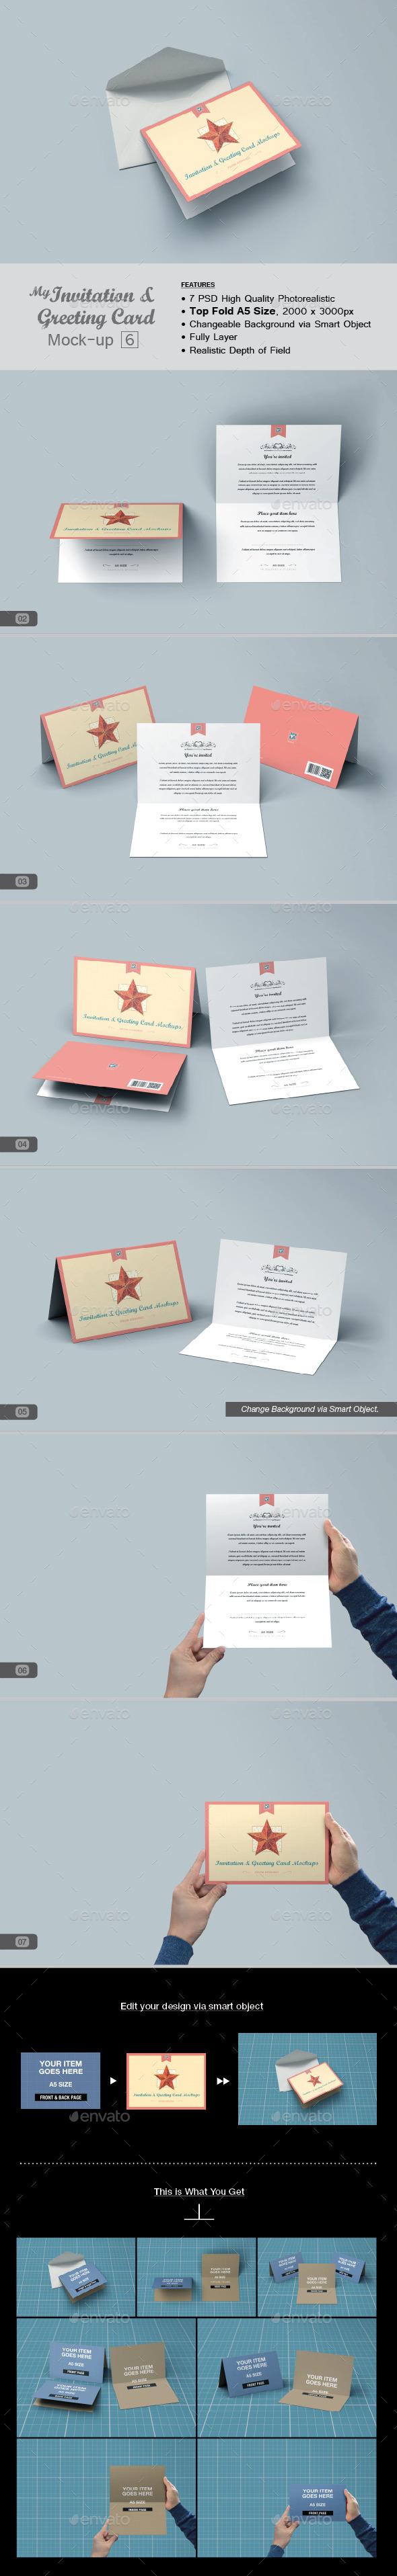 GraphicRiver myGreeting Card Mock-up v6 11564667